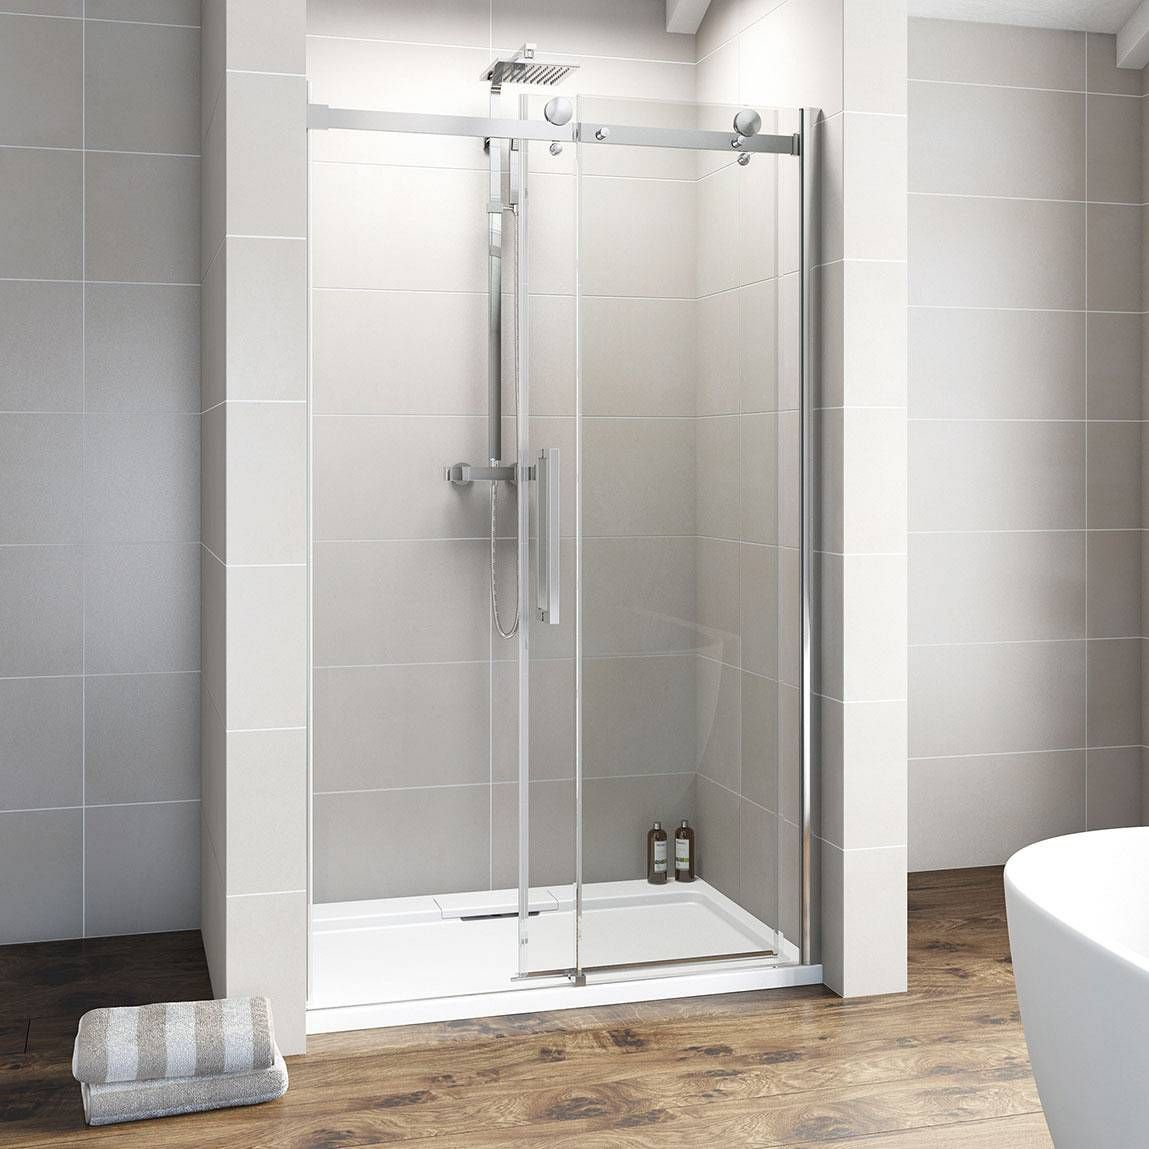 V8 8mm Frameless Sliding Shower Door 1200 Now 199 99 Less Than Half Price Shower Doors Frameless Sliding Shower Doors Sliding Shower Door